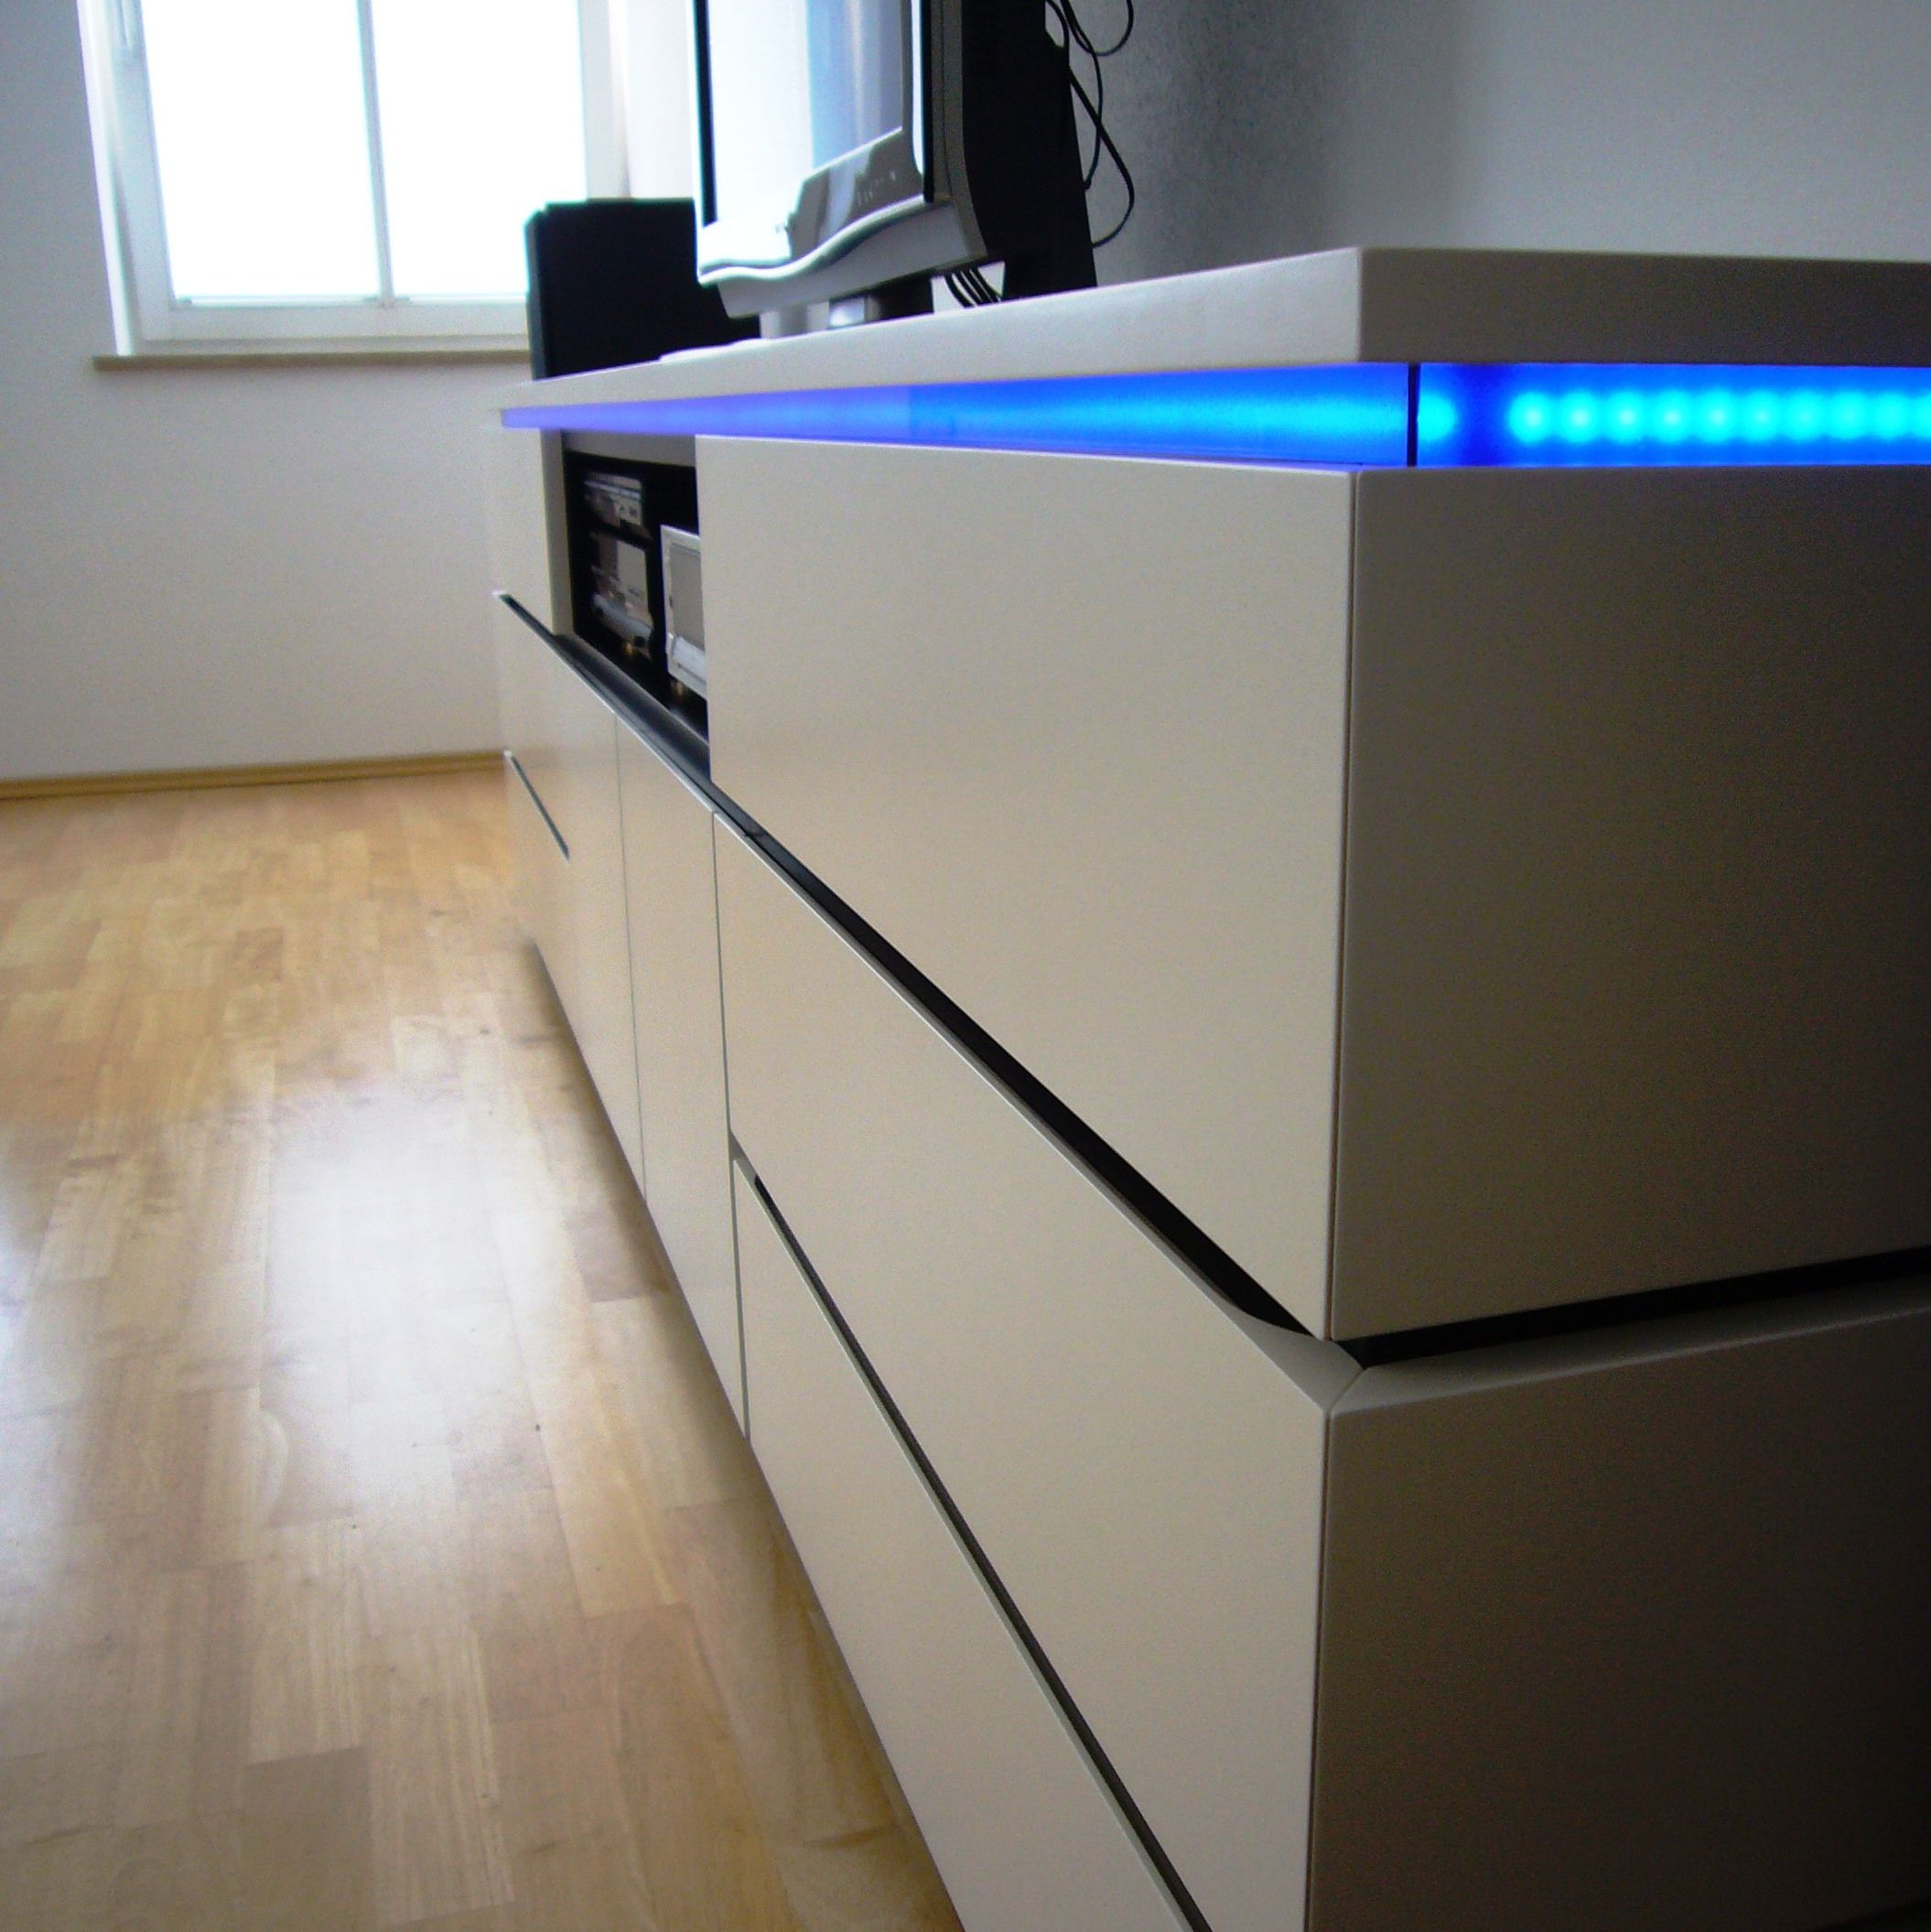 Hifi Mobel Weiss Und Schwarz Lackiert Mit Led Beleuchtung Durch Blaues Acrylglas Led Beleuchtung Acrylglas Led